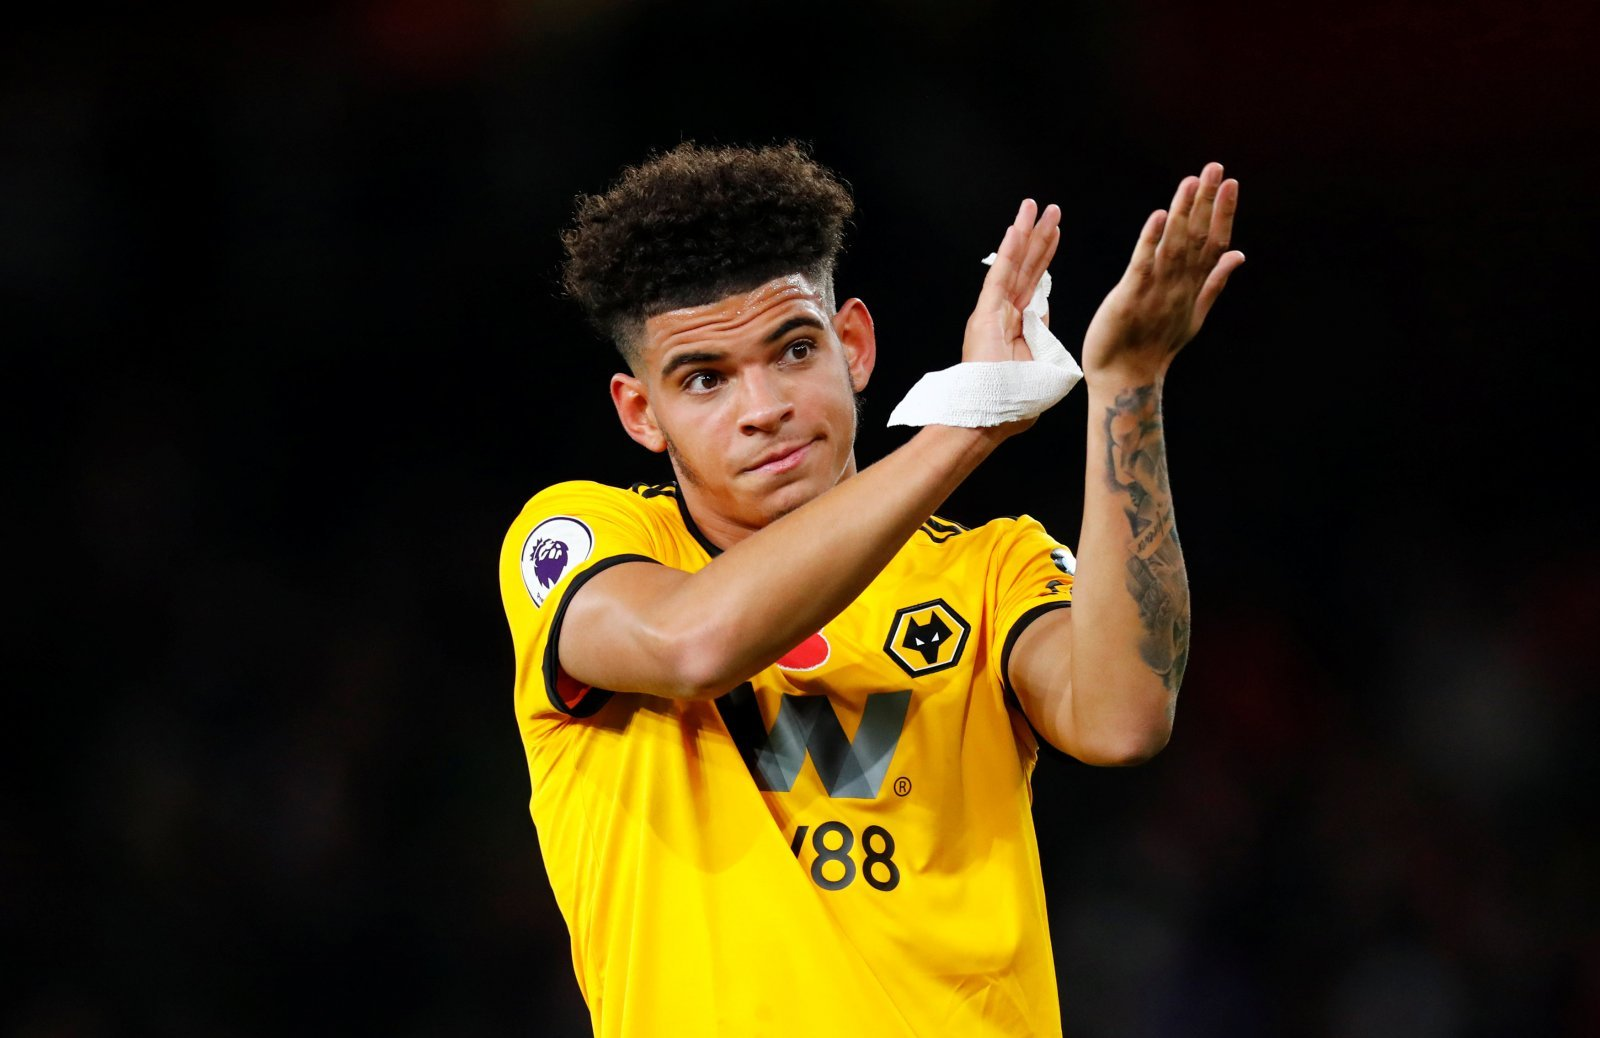 Wolves: Morgan Gibbs-White eyeing more regular appearances in starting line-up